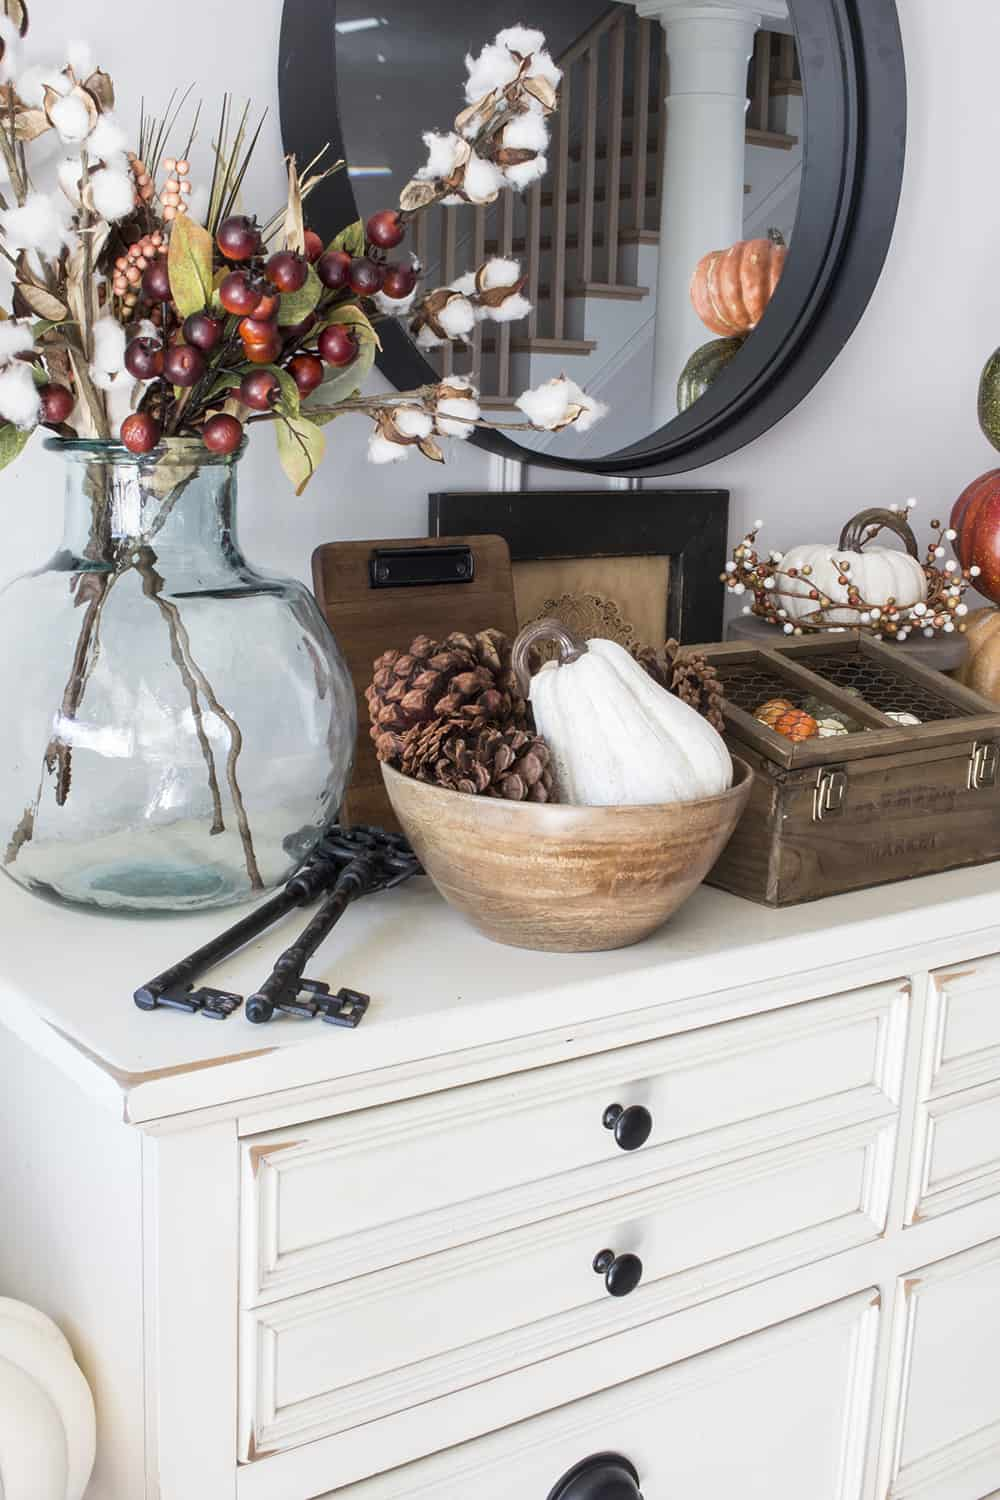 faux berries, cotten stems, wood bowls, white pumpkins